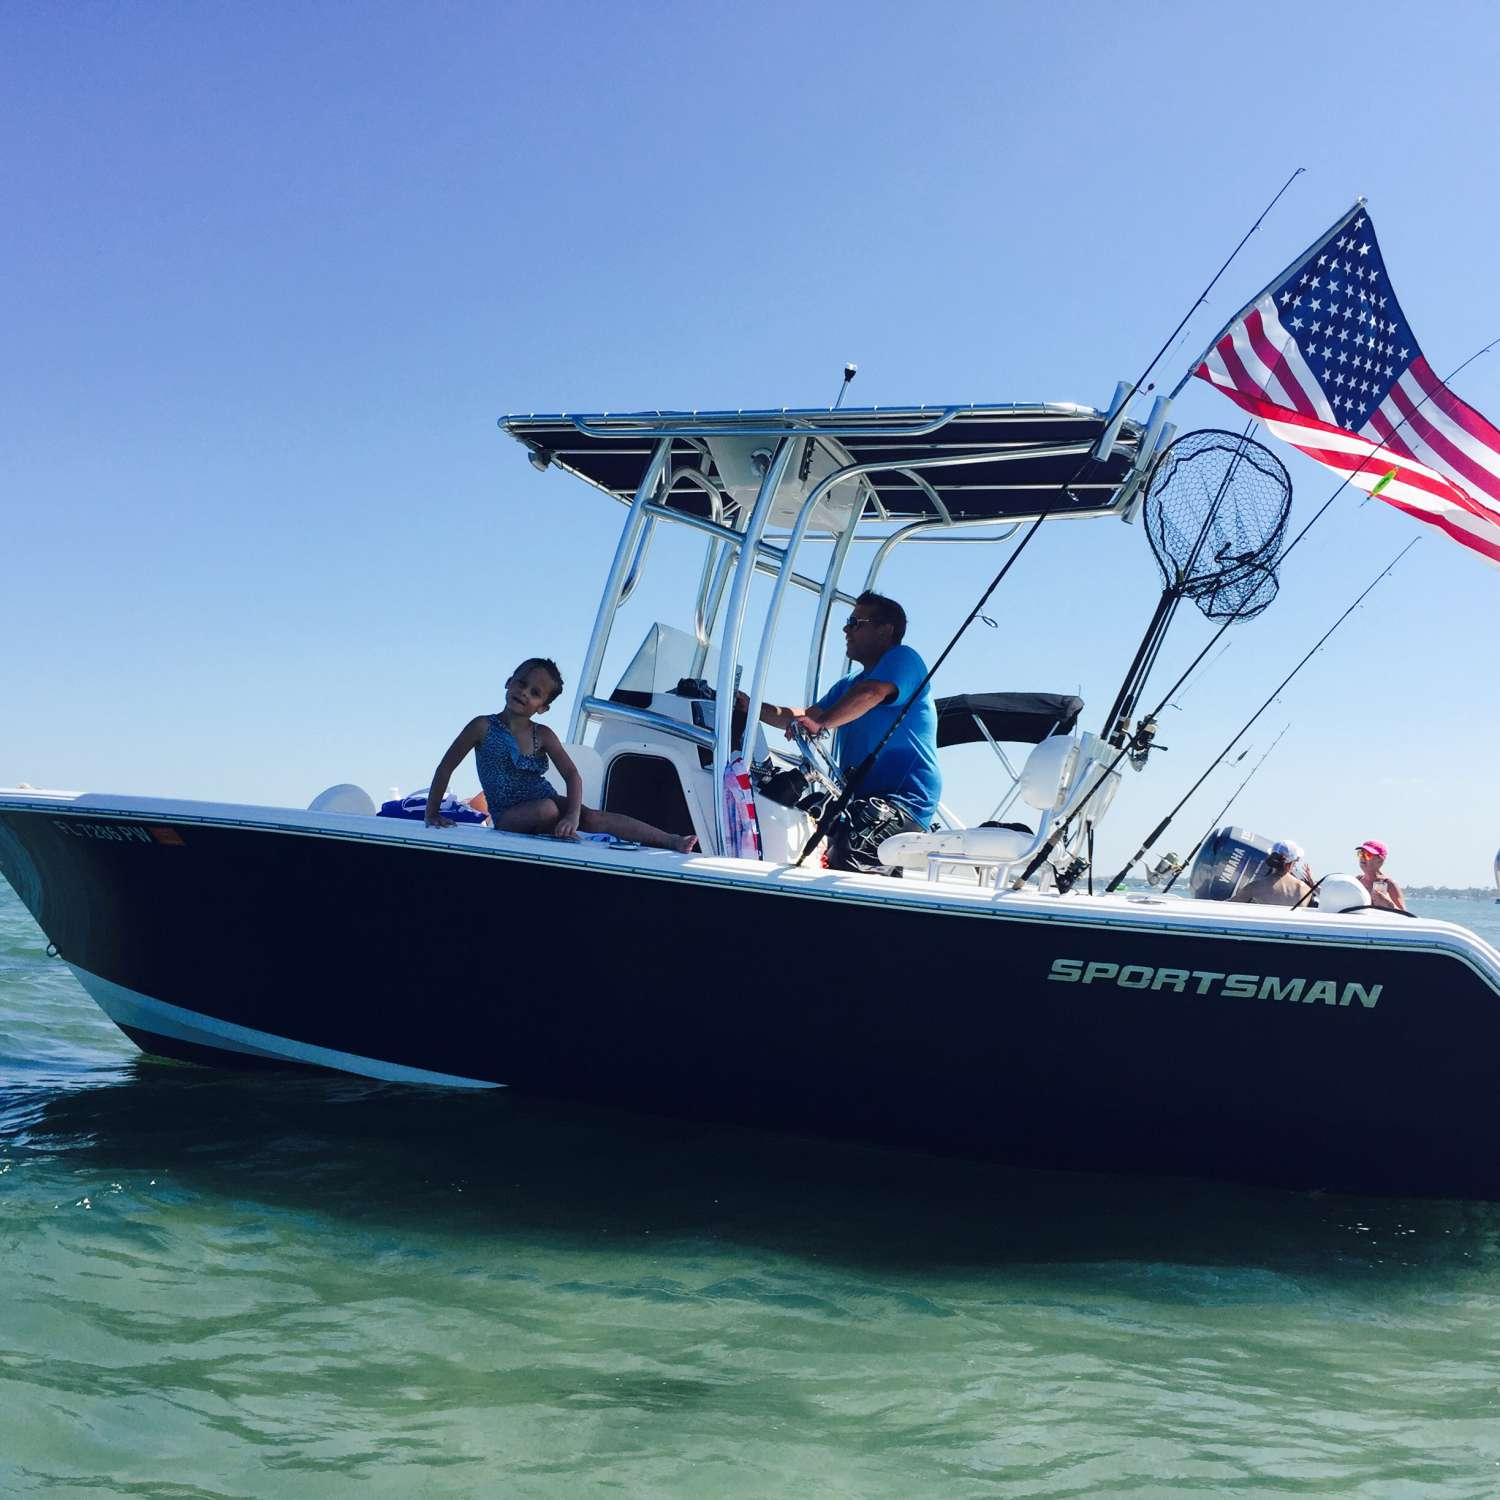 Title: Family Boat Day - On board their Sportsman Heritage 211 Center Console - Location: Sebastian, Florida. Participating in the Photo Contest #SportsmanJune2017